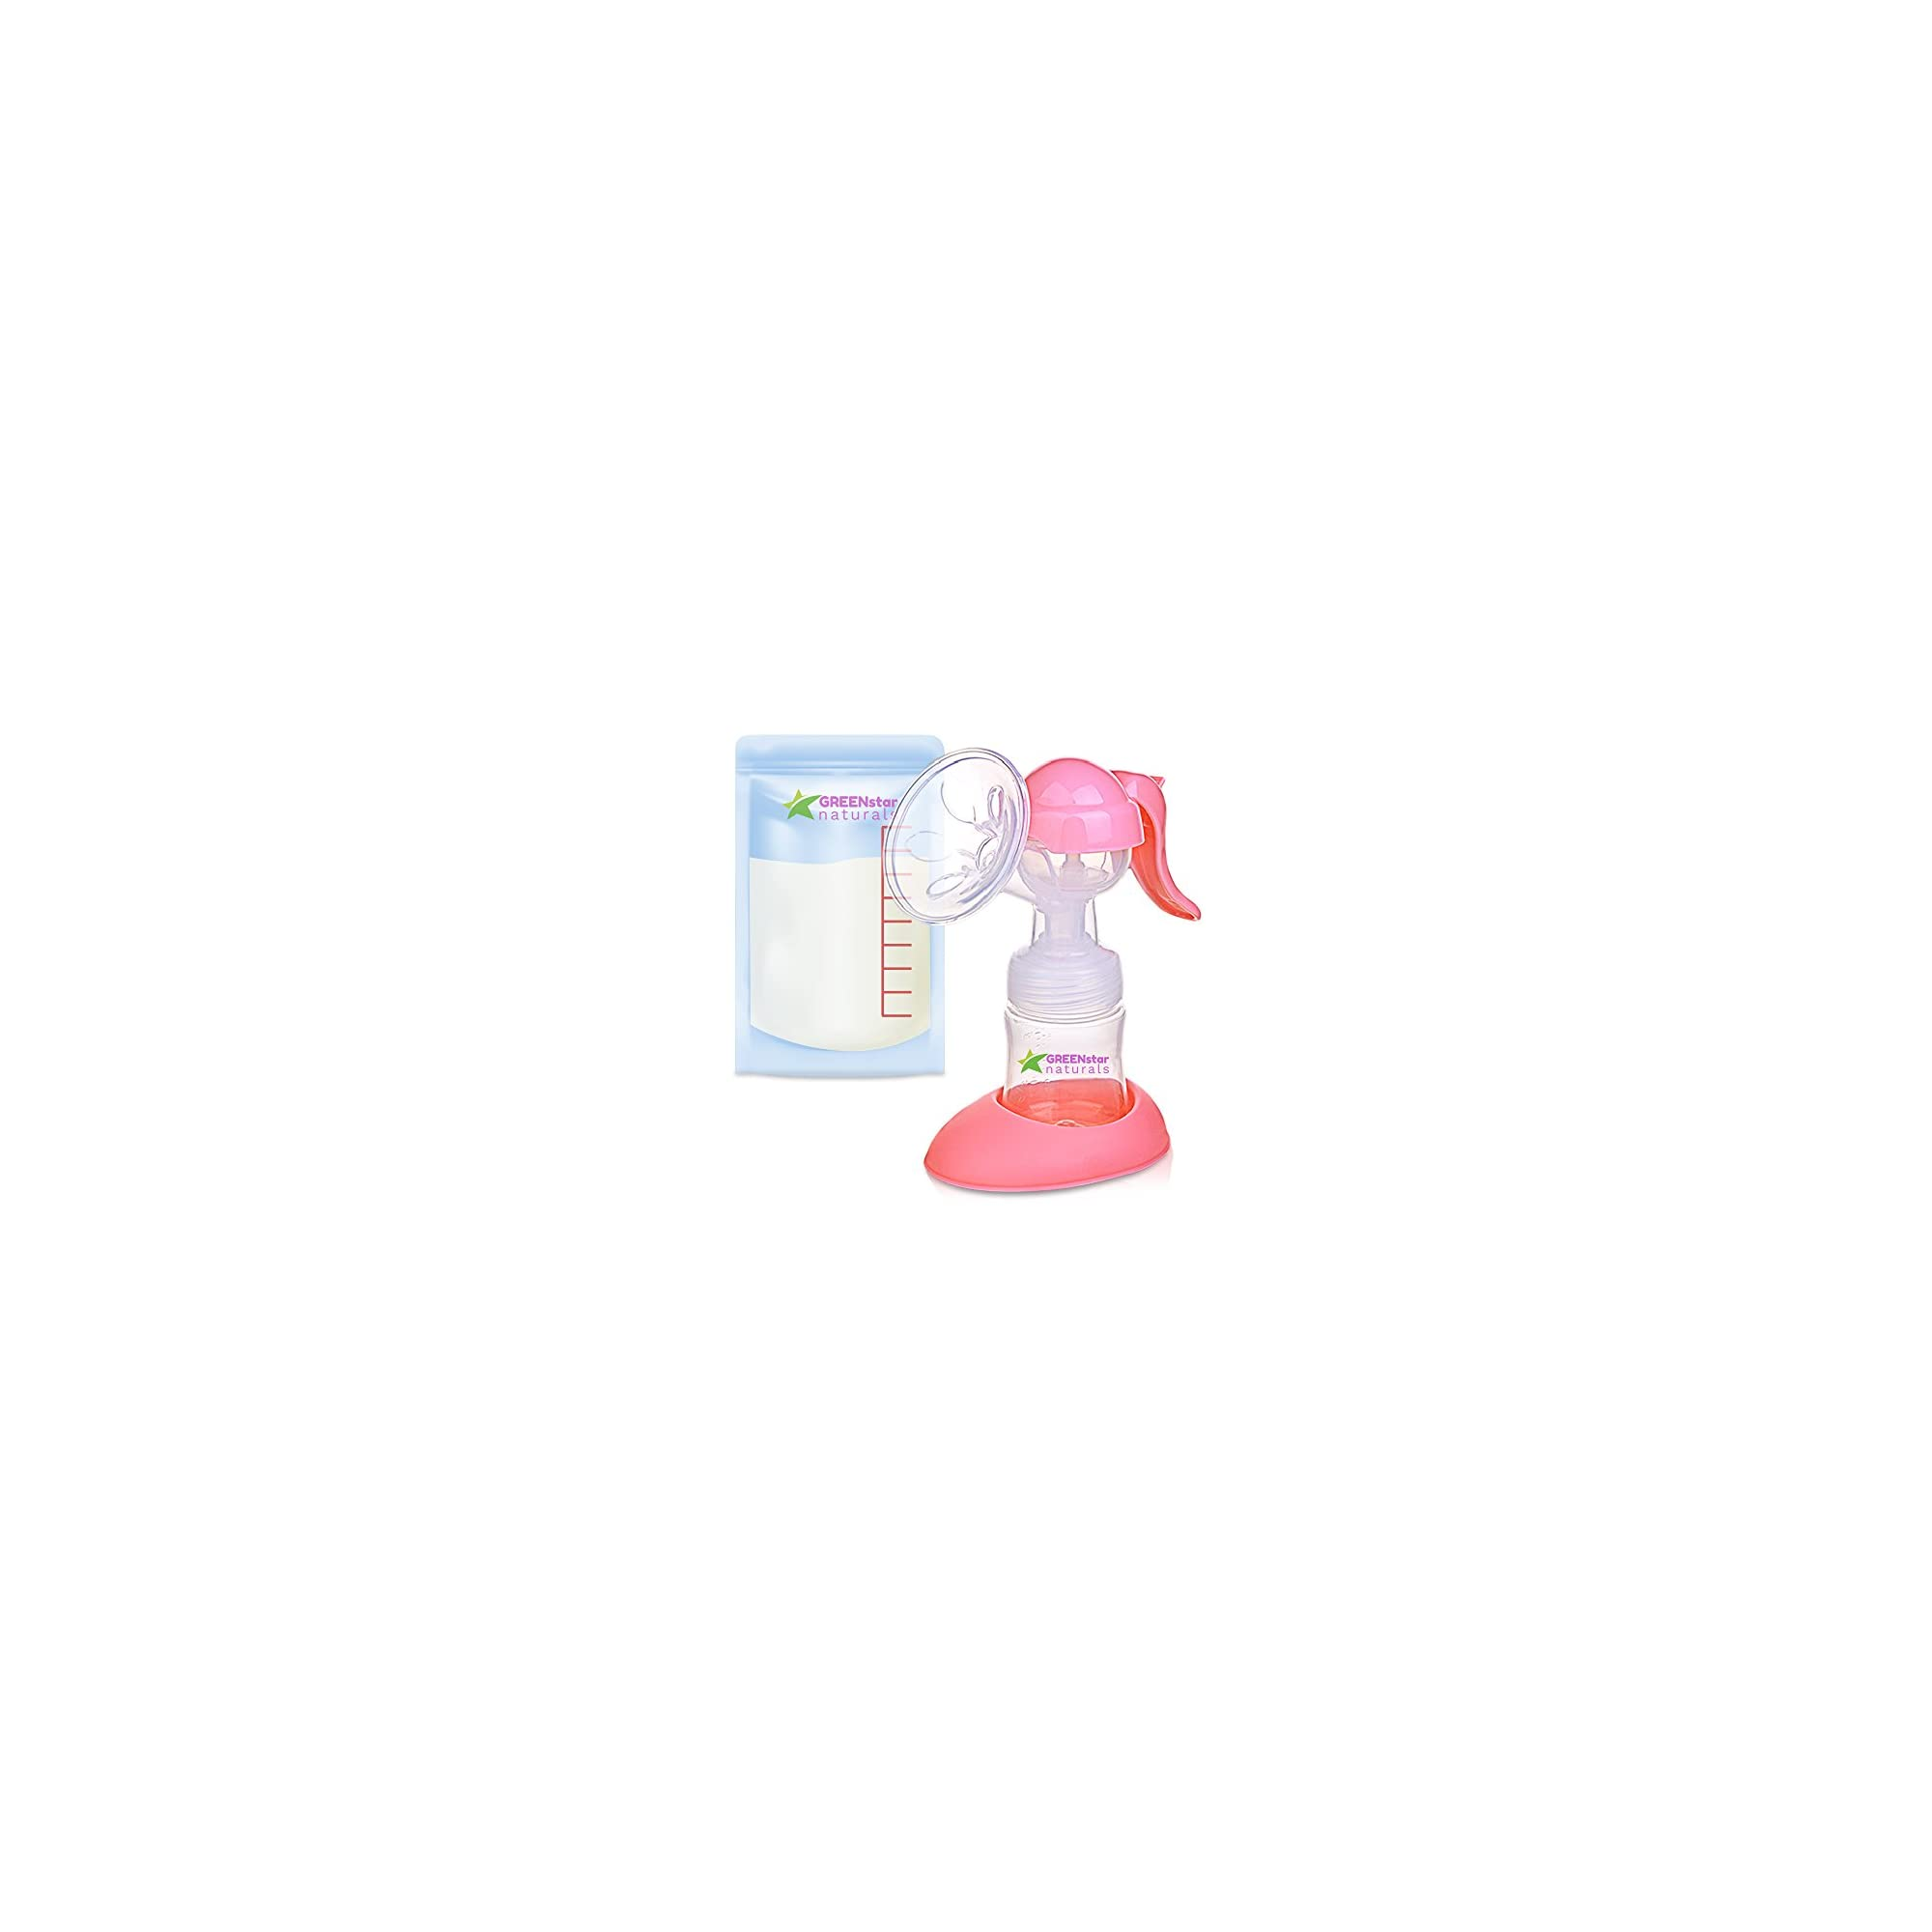 White Freezer-Safe Storage Bottles and a Built-in Rechargeable Battery Includes 24mm Flanges Ameda Mya Pro Hospital Strength Breast Pump